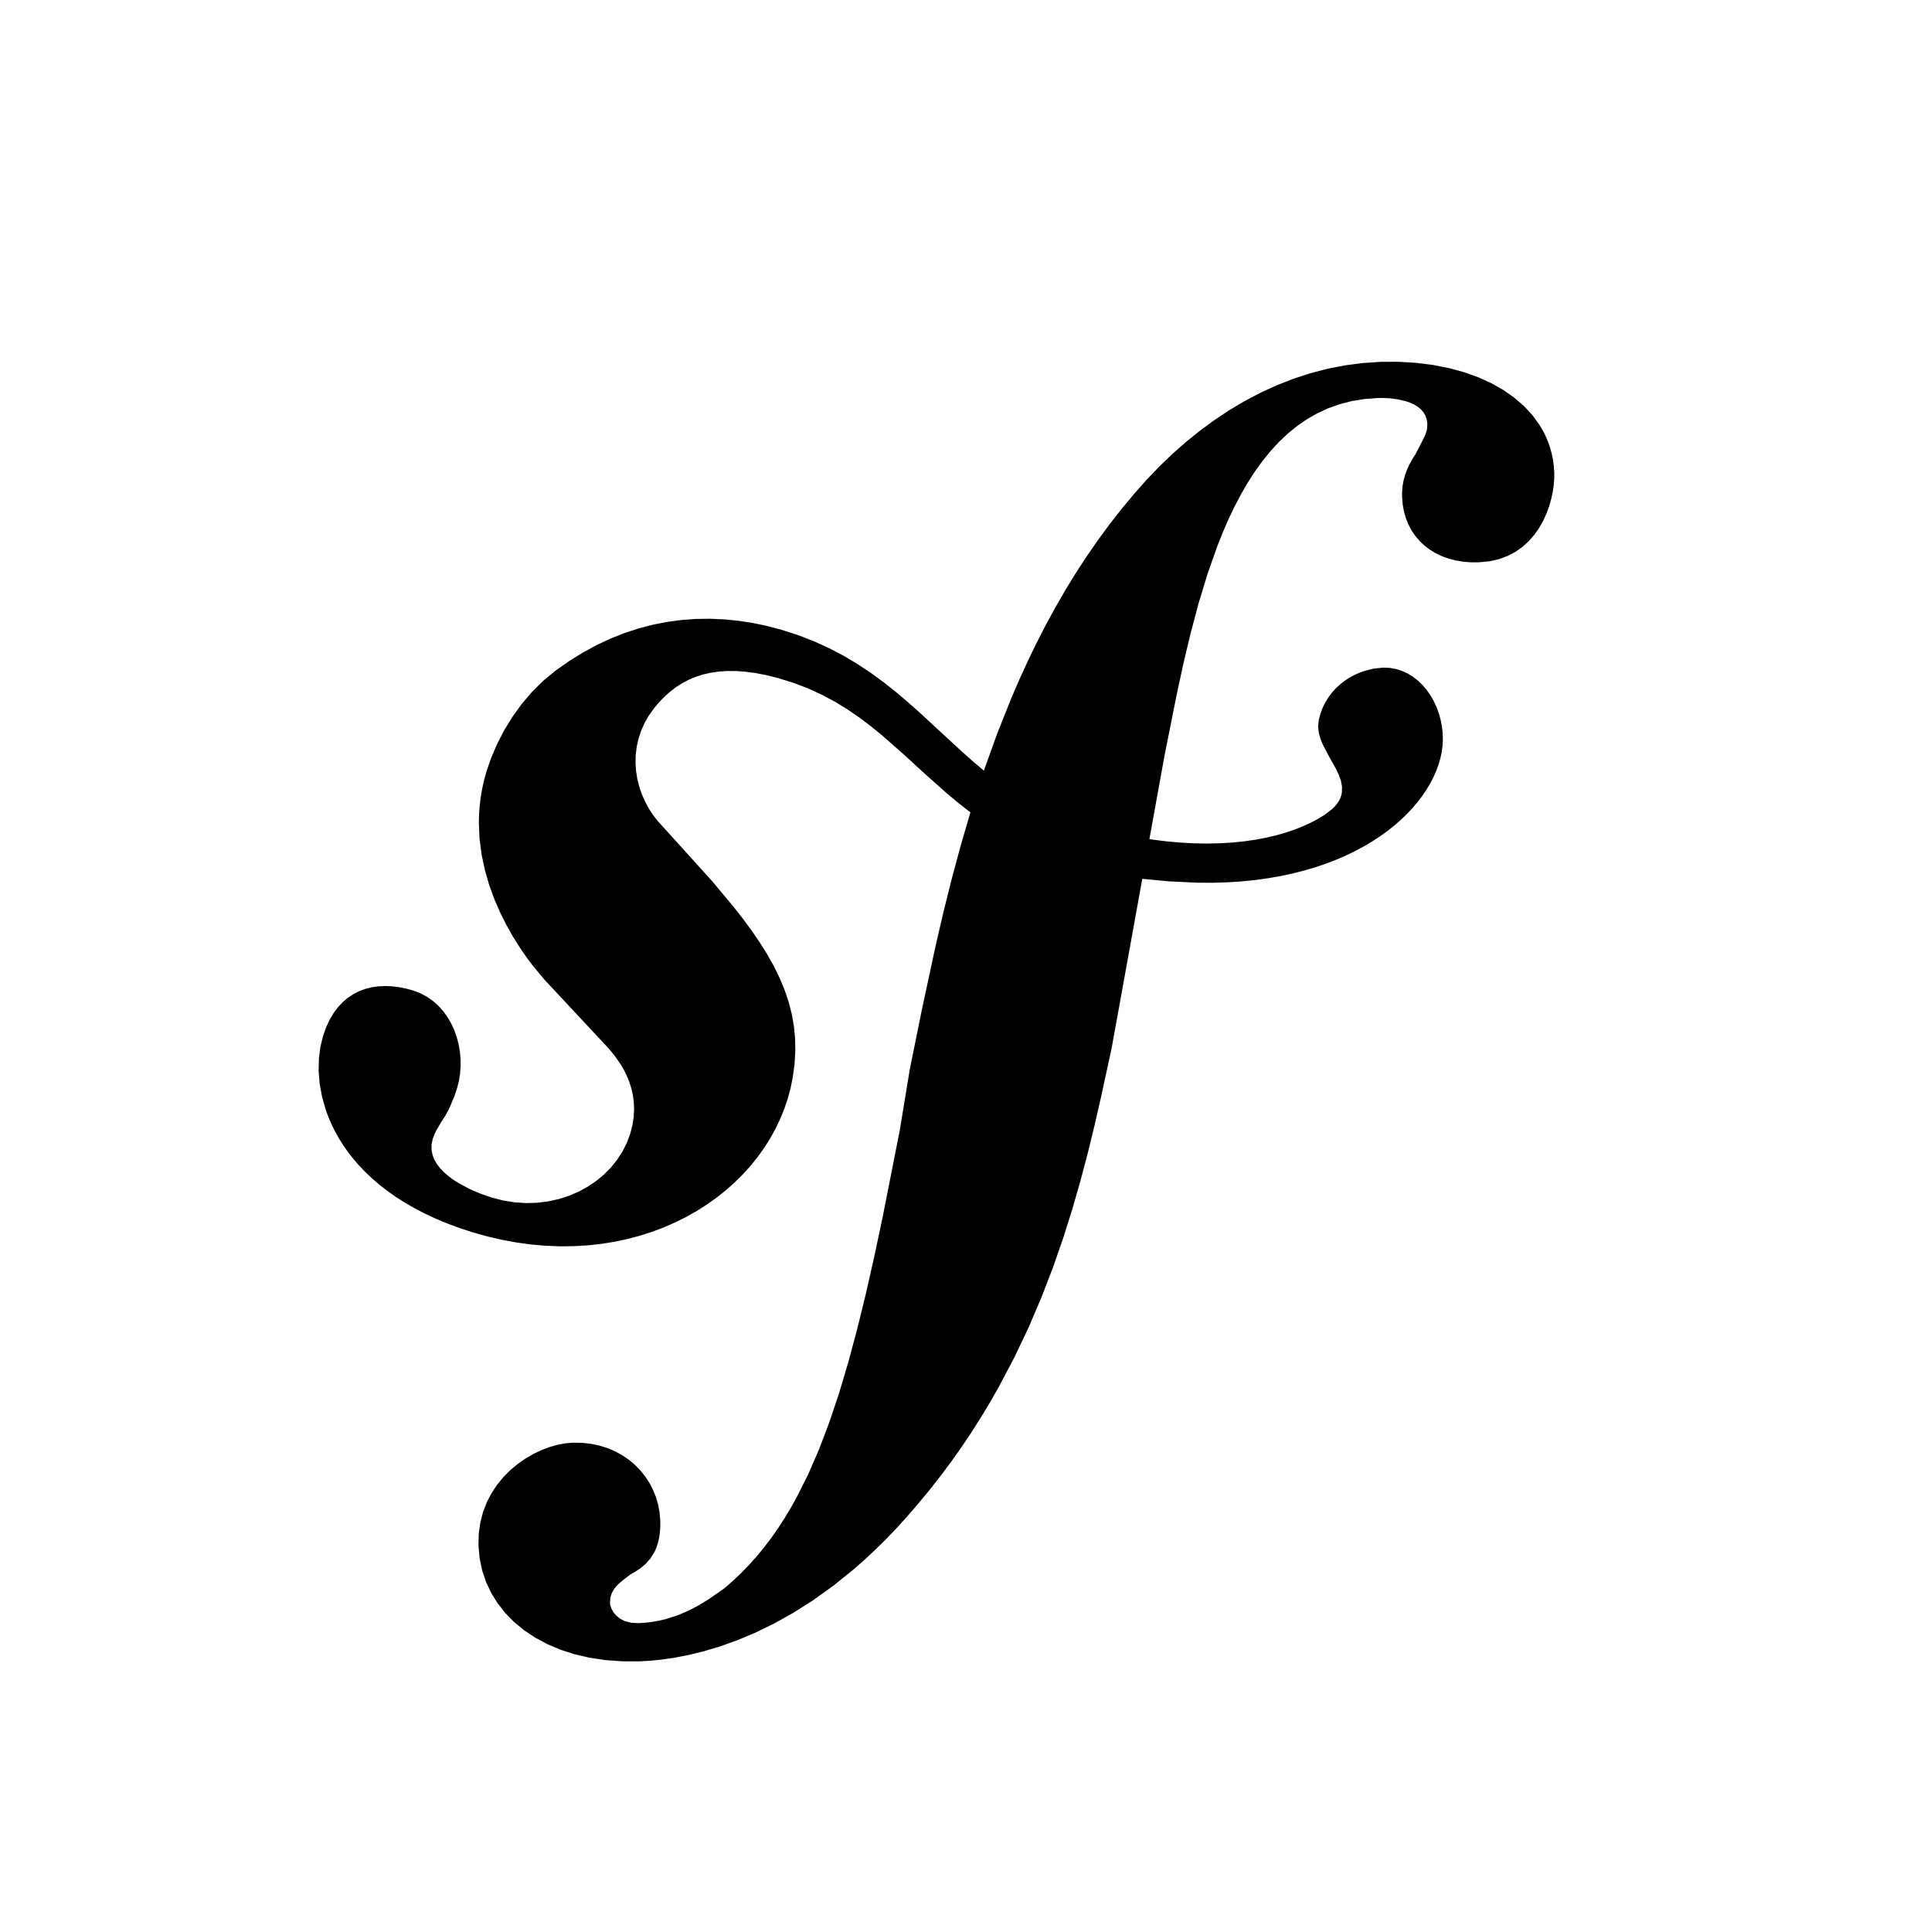 Symfony Software House